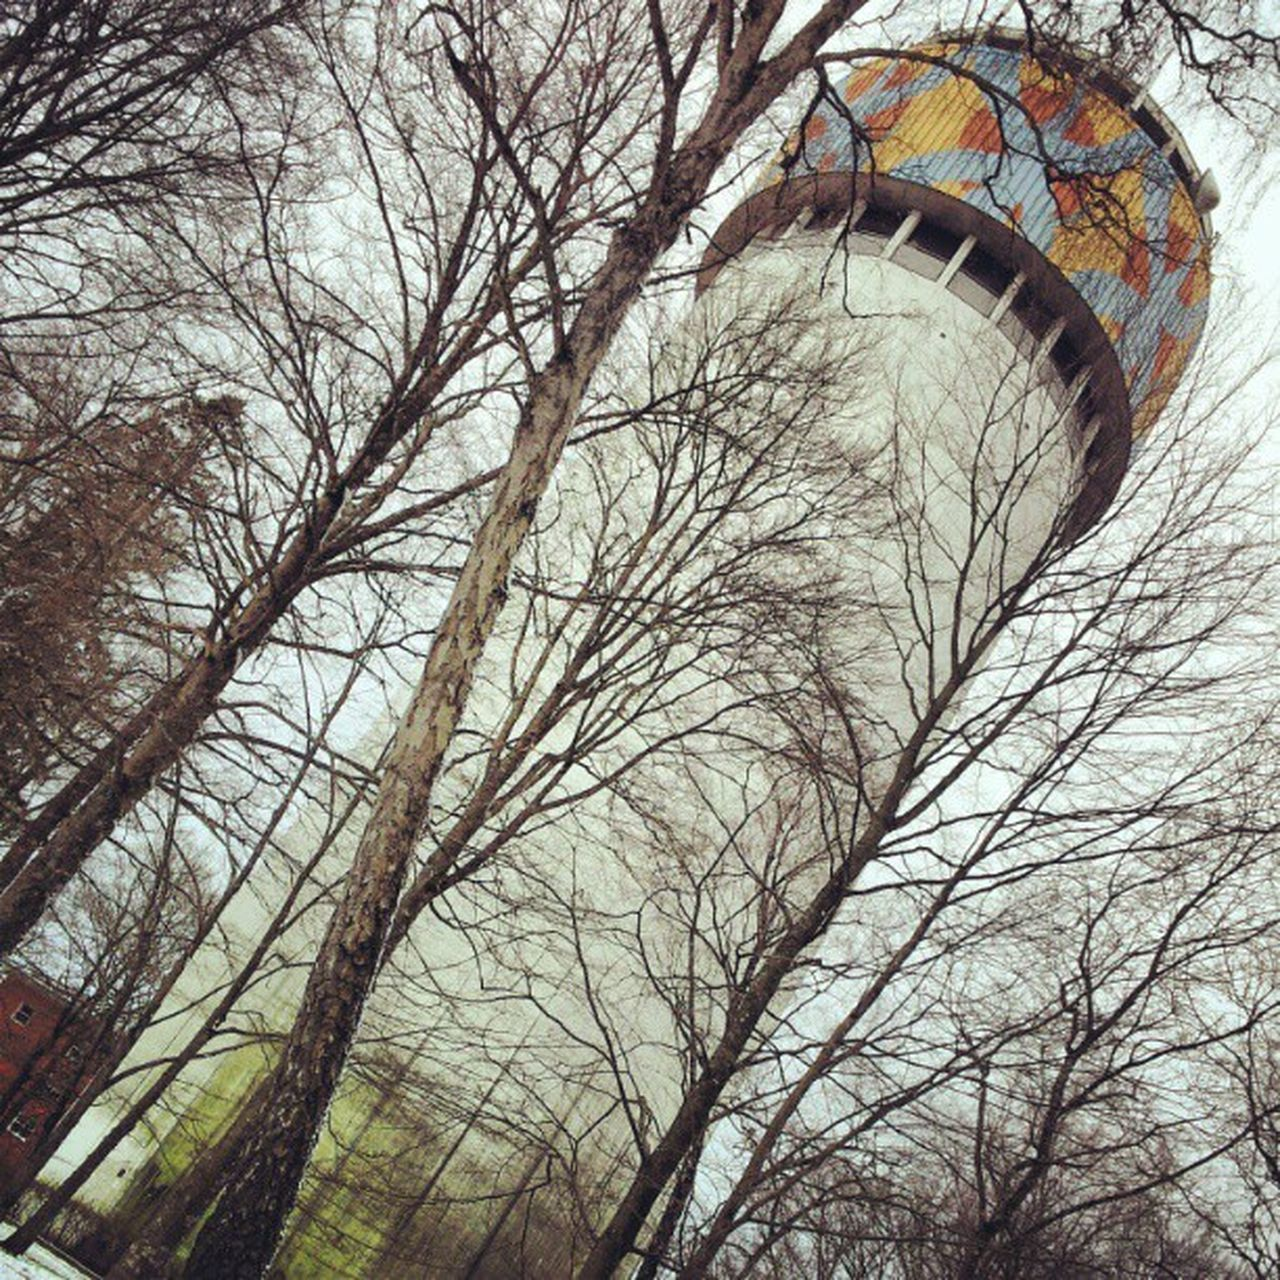 Älmhult's water tower. Architecture Woods Forest Tower Sweden Watertower Bosque Sverige Ig_sweden älmhult